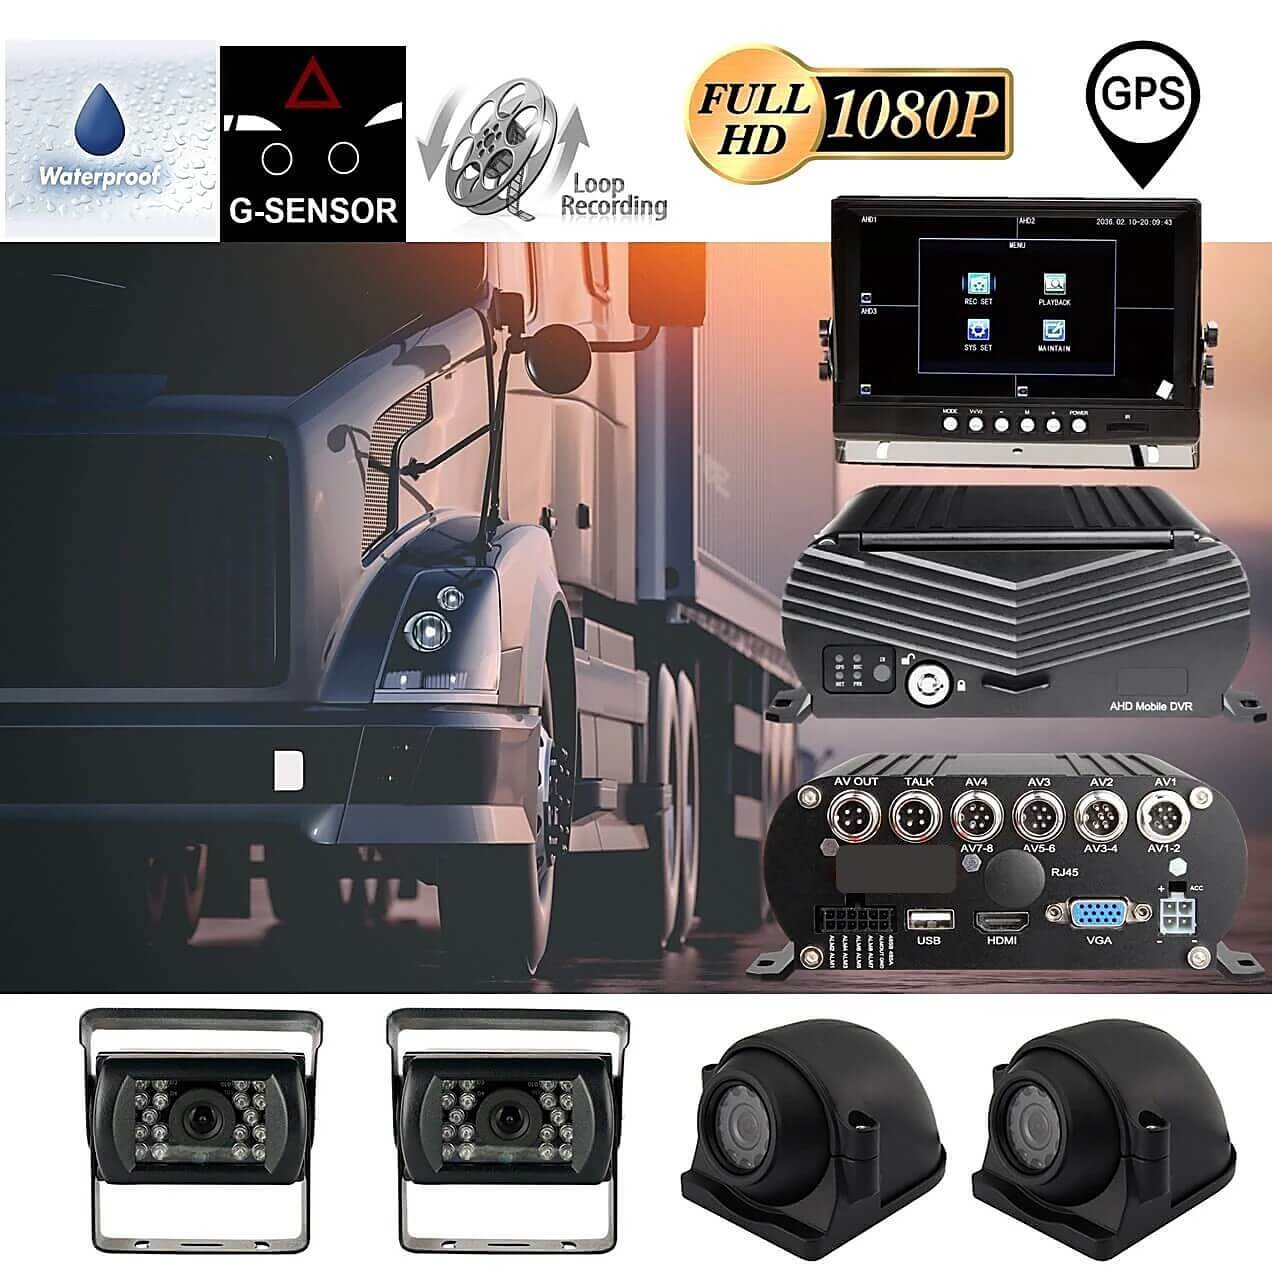 MDVR 1080P BlackBox 4-8 Cam DVR System with HDD Drive, GPS & More! 2nd Generation Model